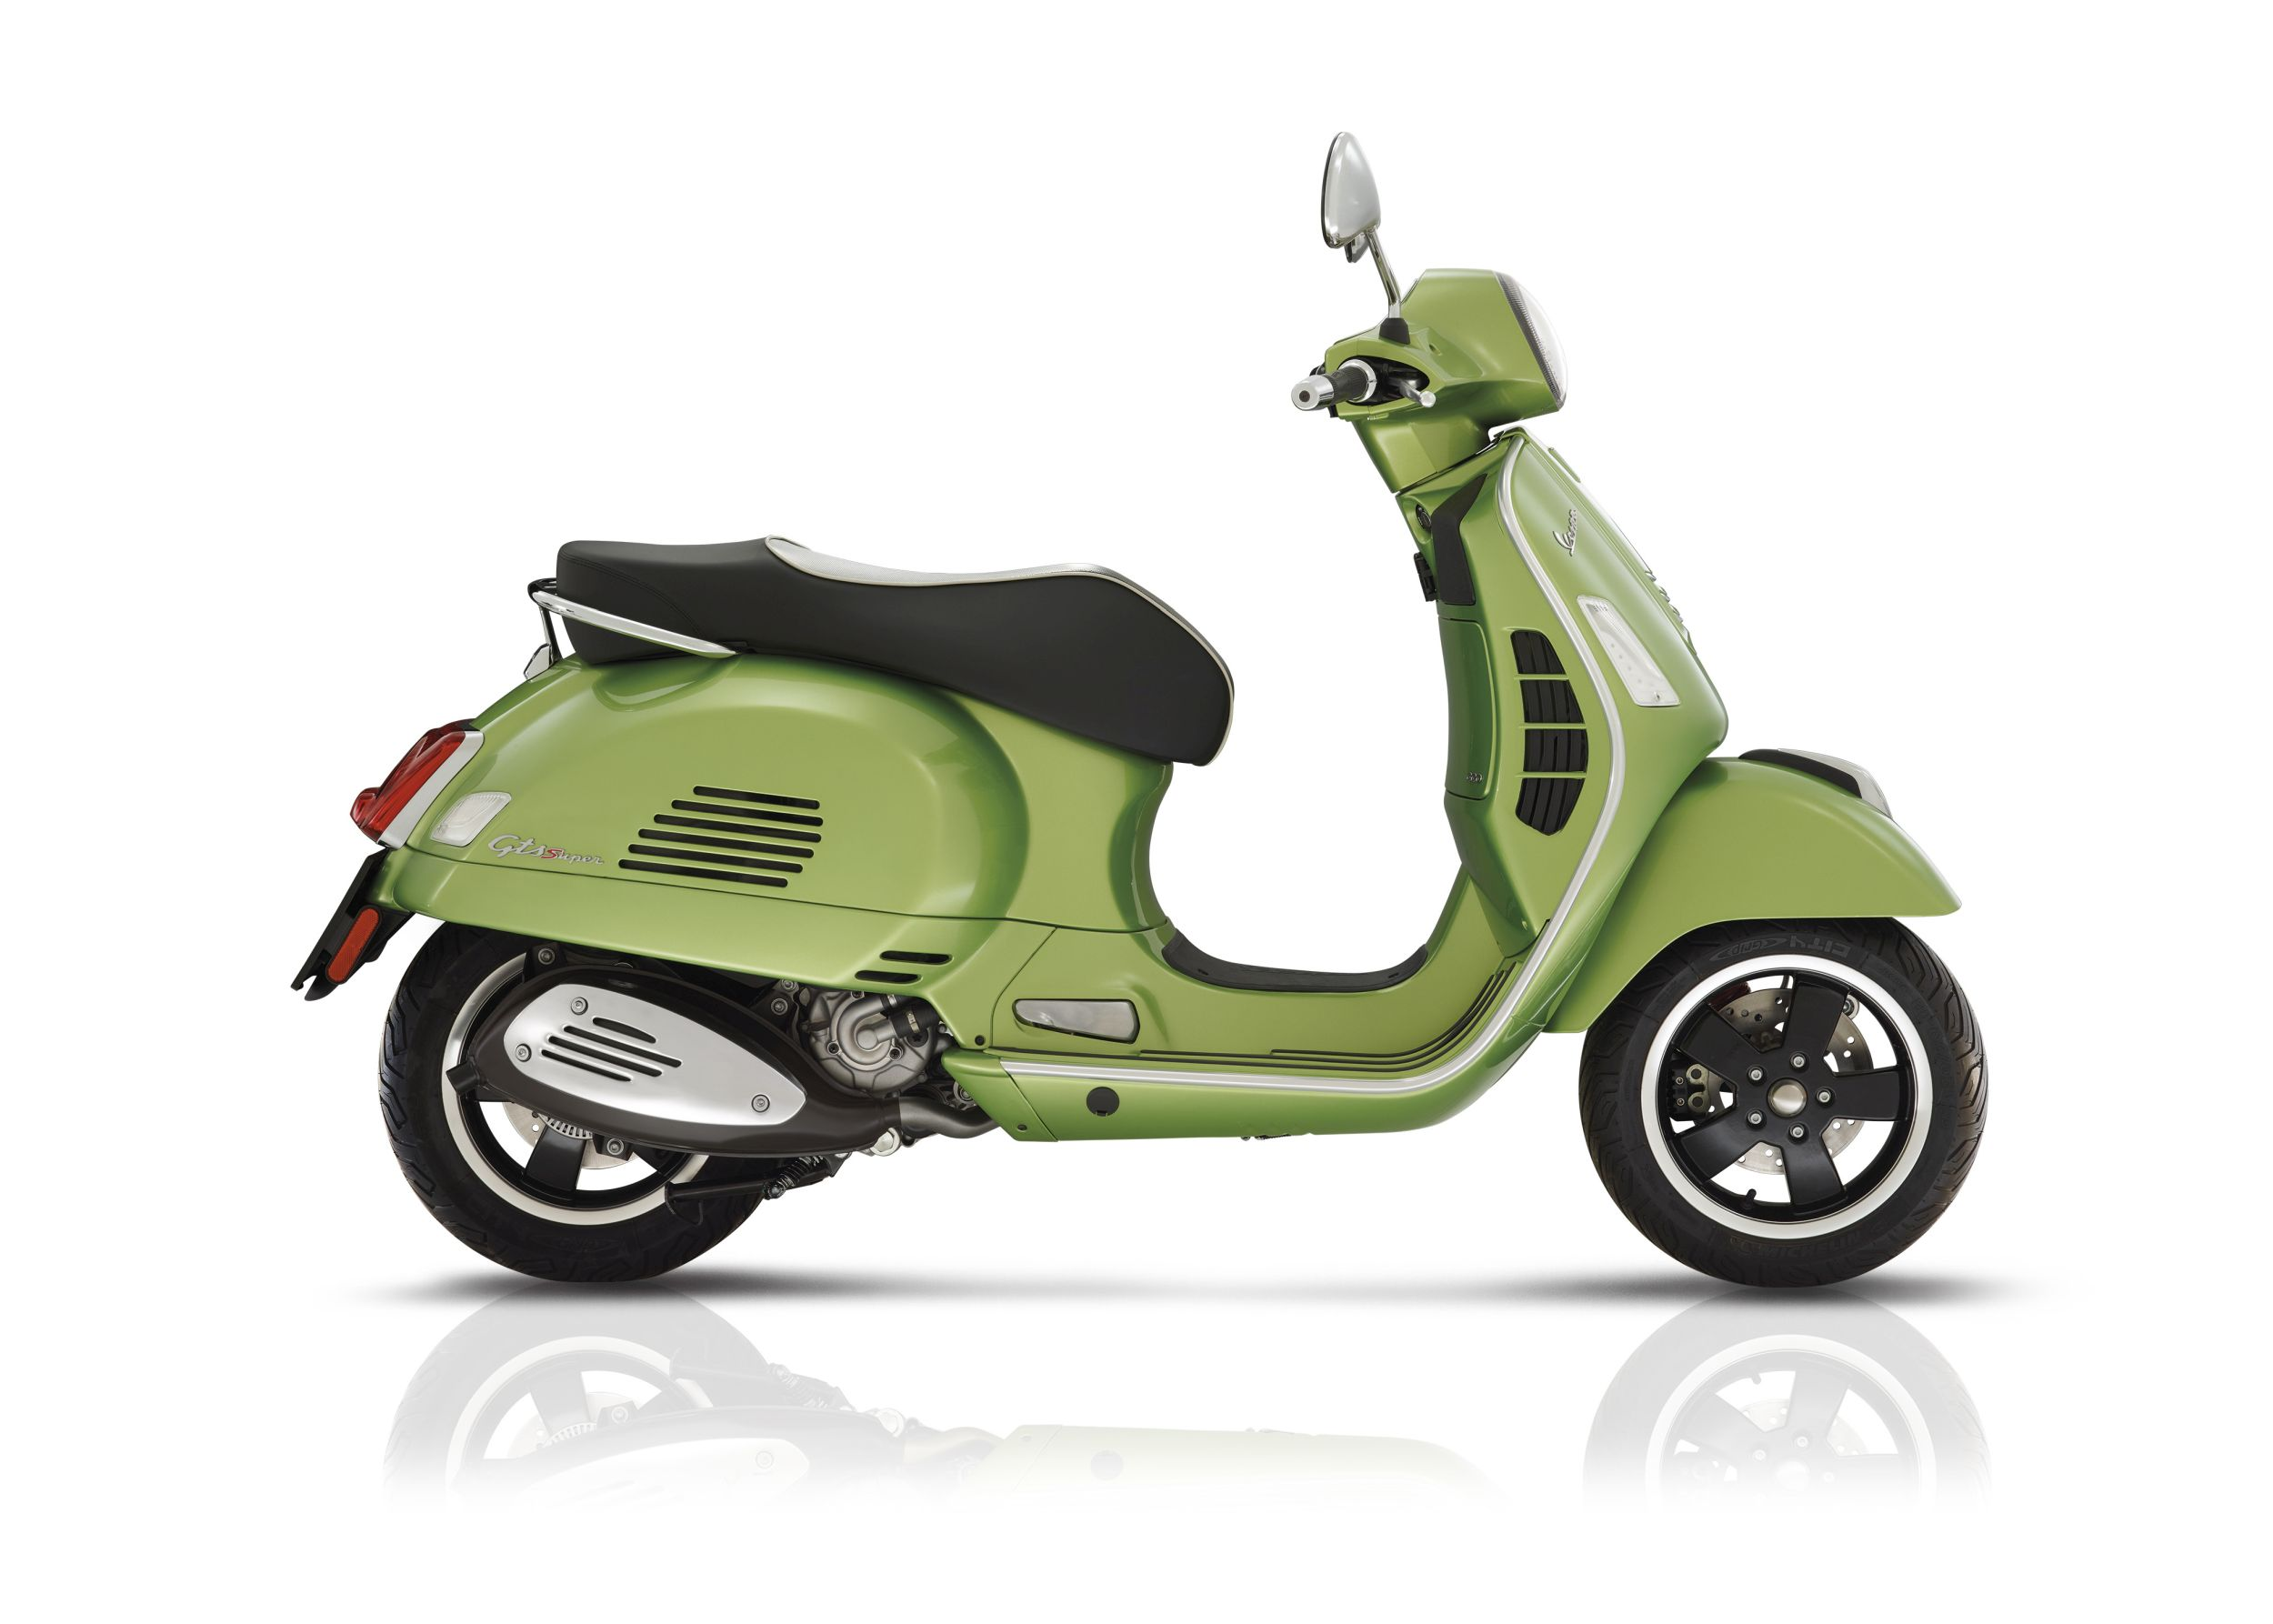 vespa gts 300 i e super all technical data of the model gts 300 i e super from vespa. Black Bedroom Furniture Sets. Home Design Ideas